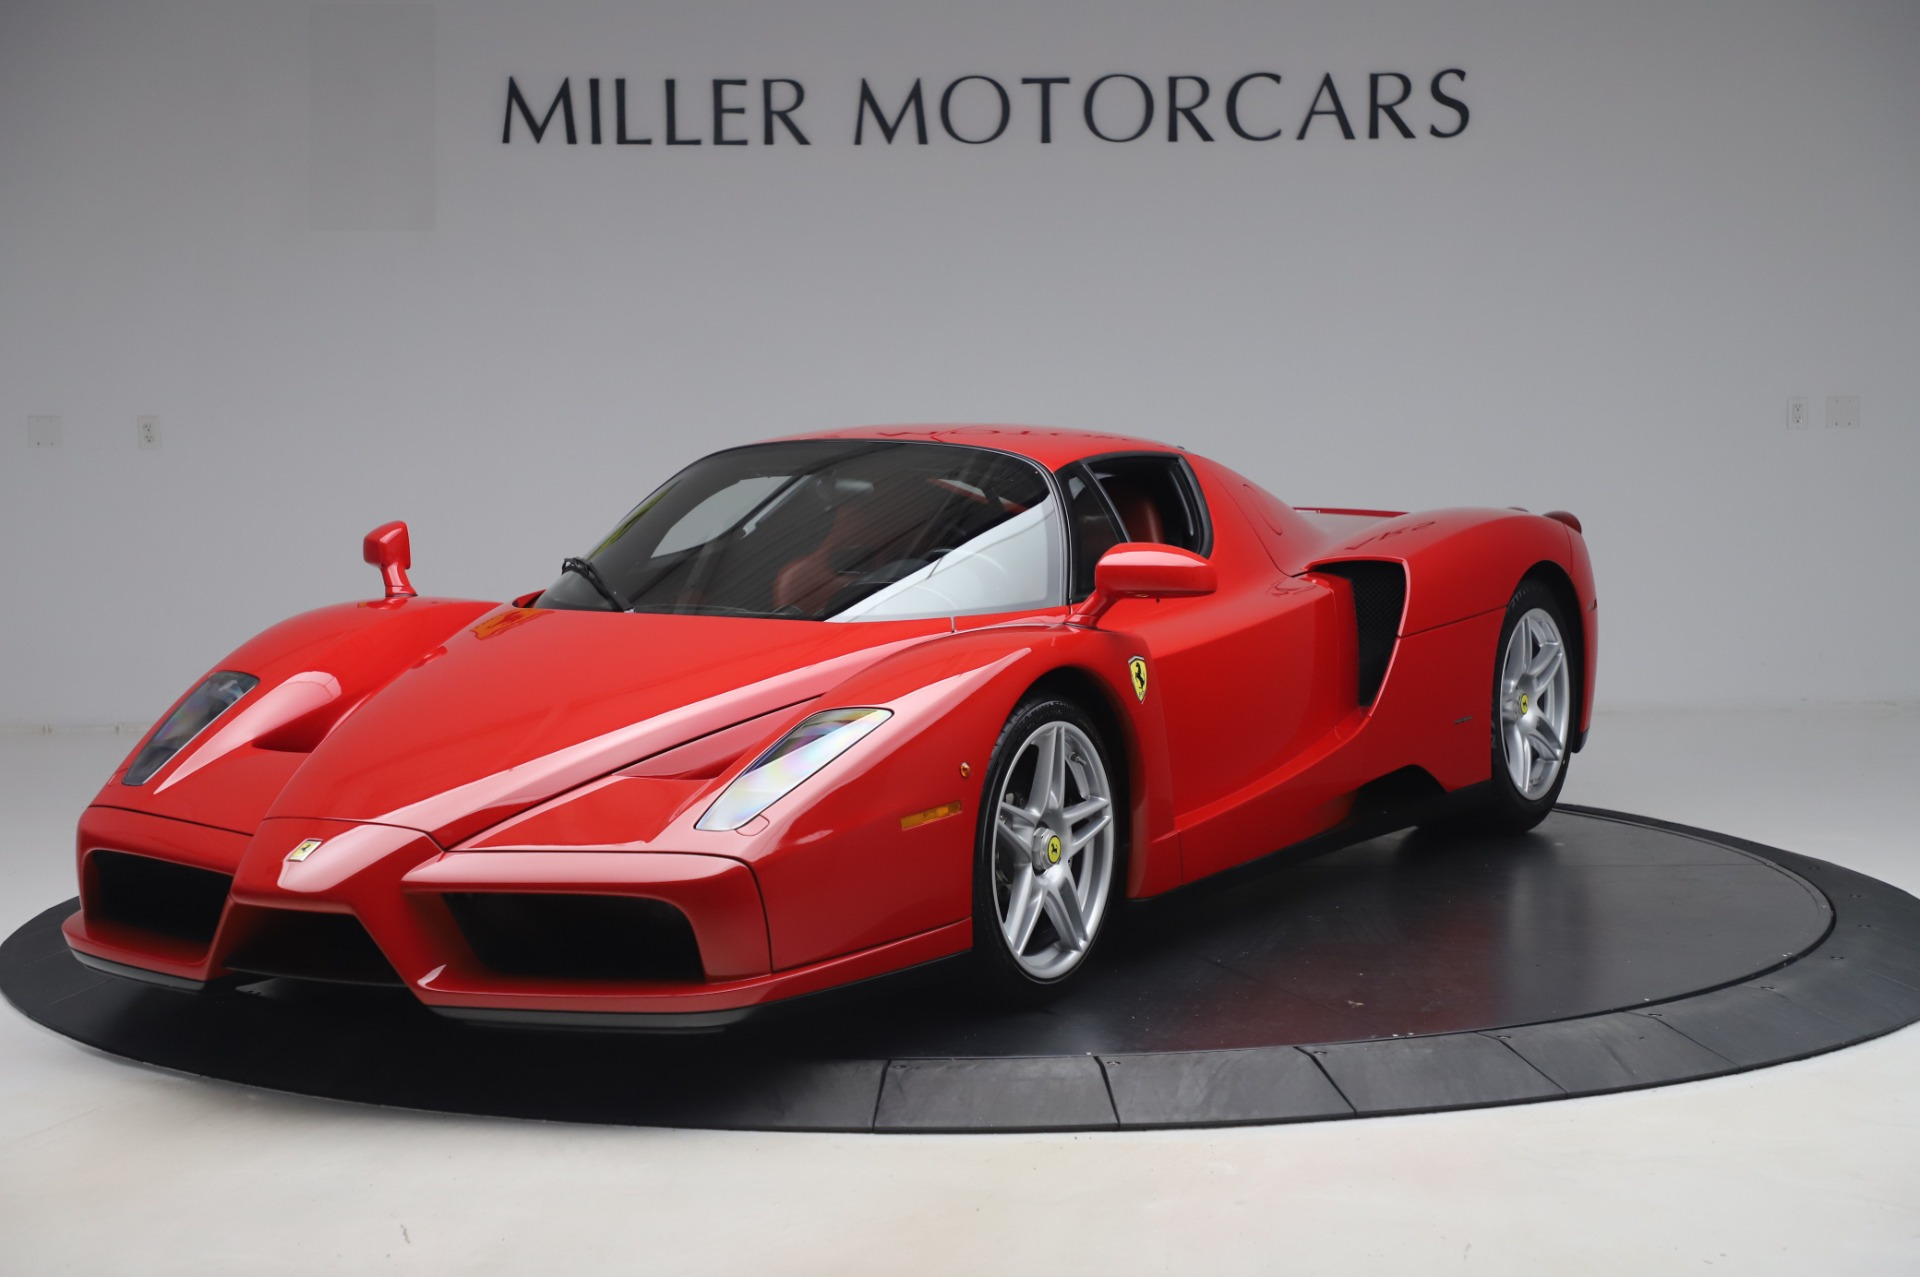 Used 2003 Ferrari Enzo for sale $2,995,000 at Bentley Greenwich in Greenwich CT 06830 1